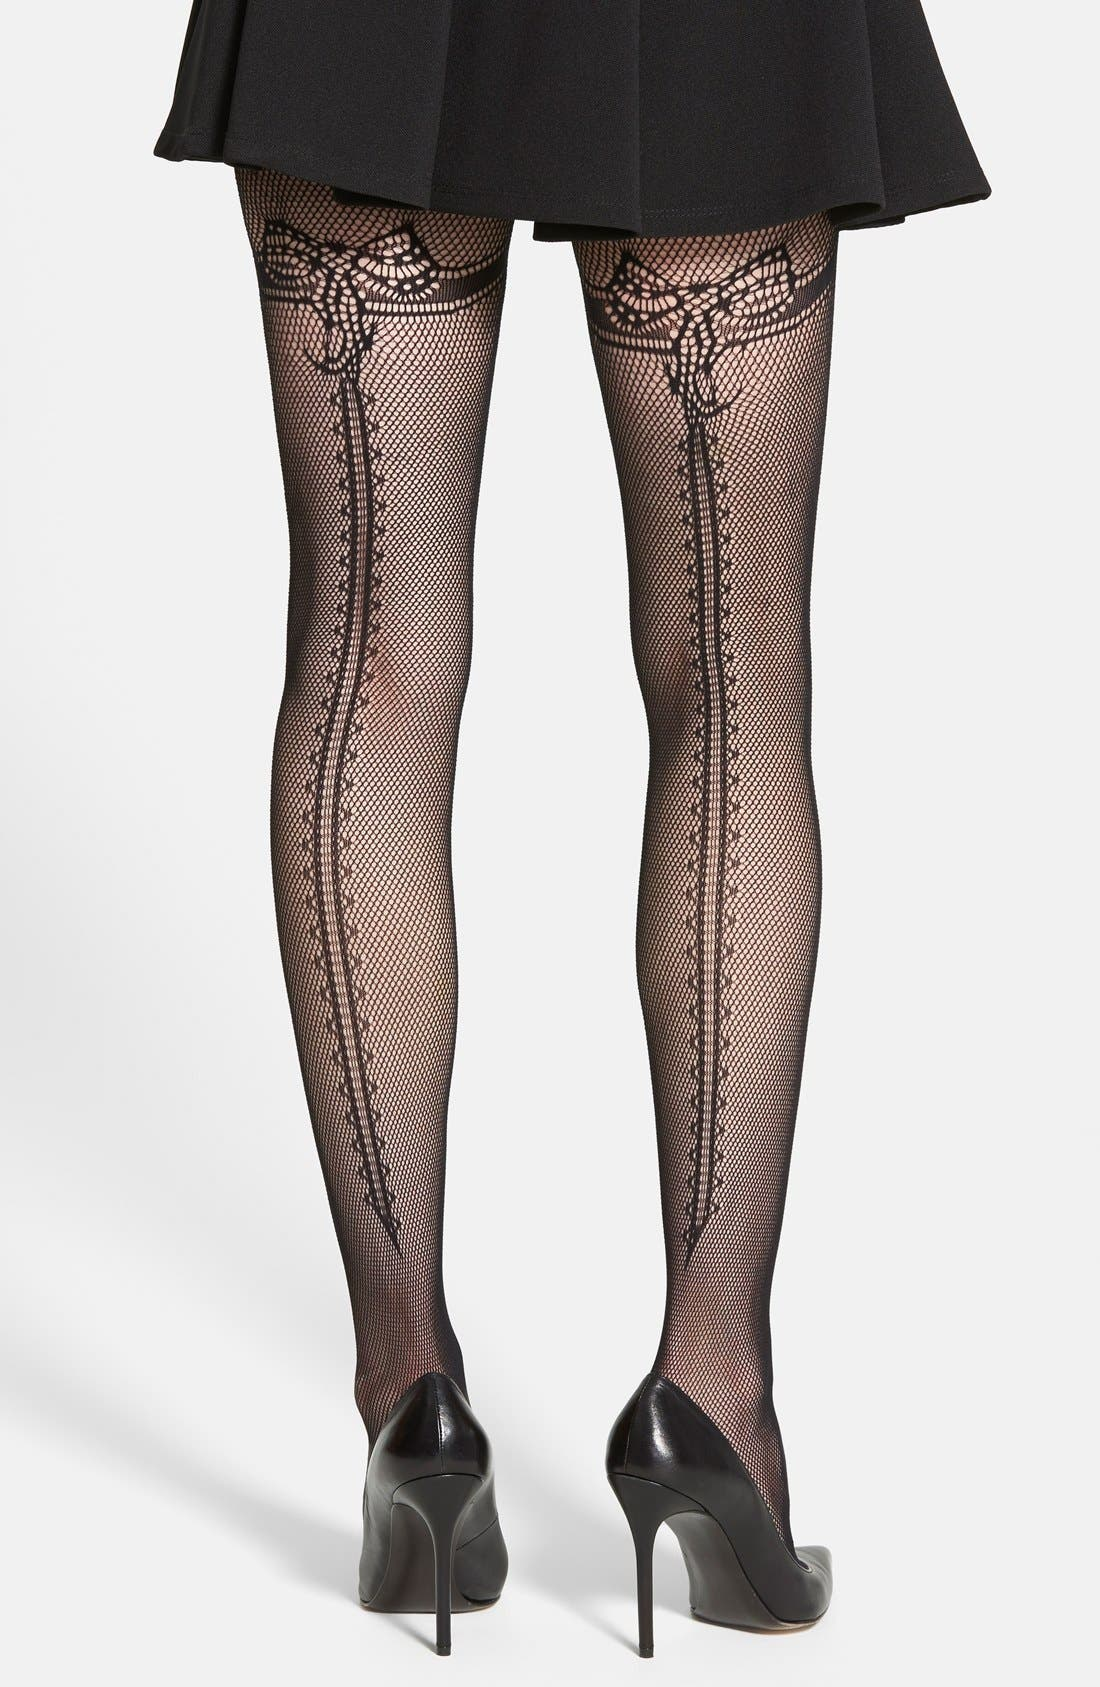 Main Image - Erica M. 'Genevive' Fishnet Tights